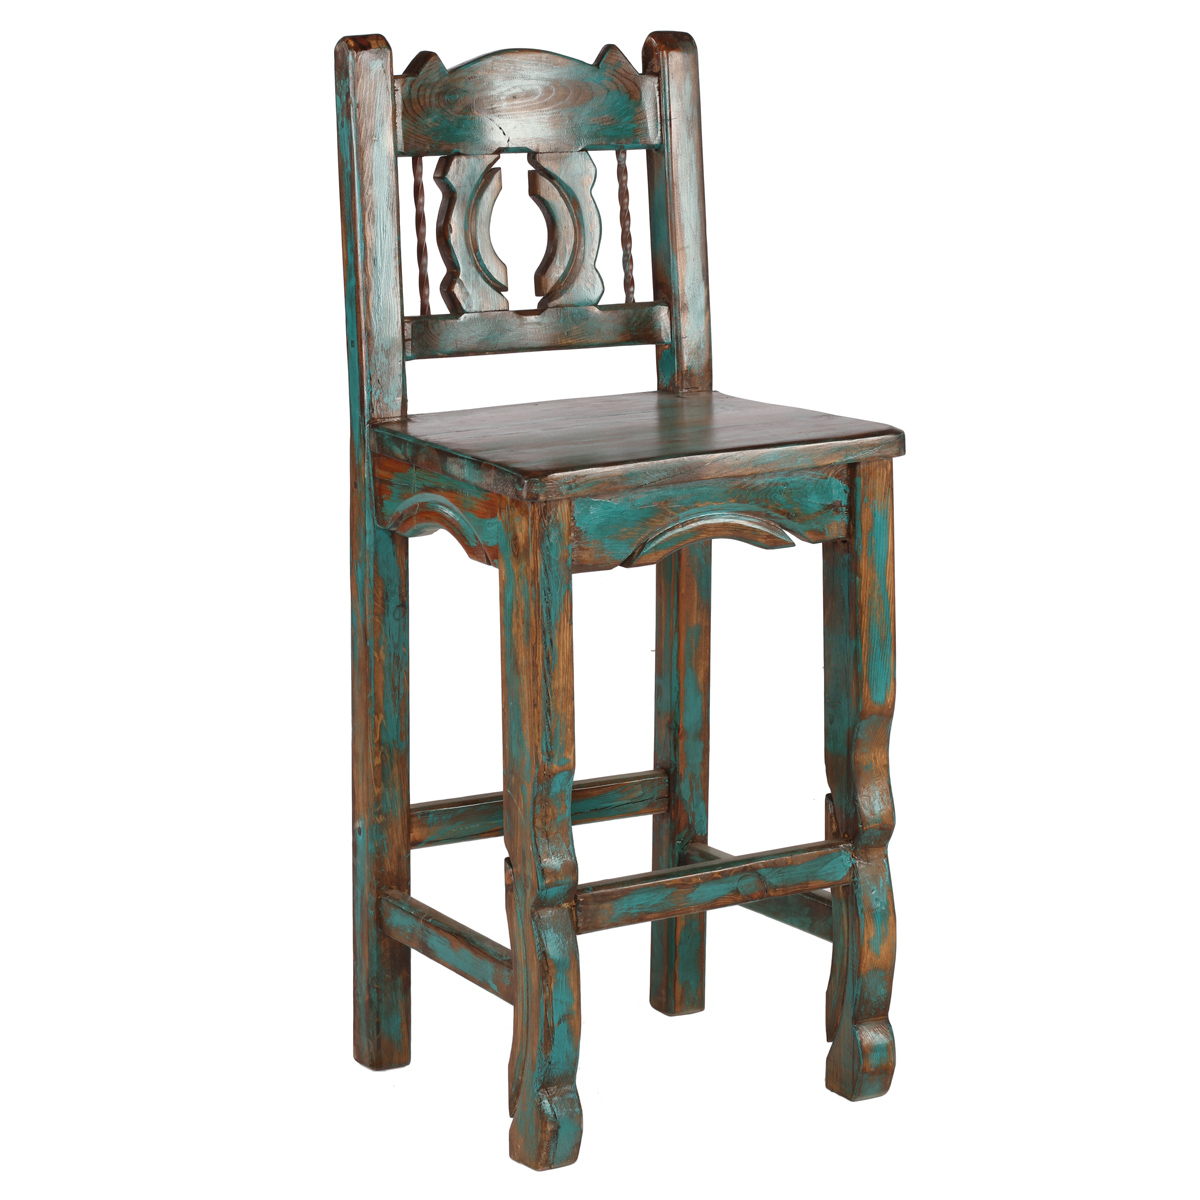 Native Turquoise Western Barstool - 26 Inch